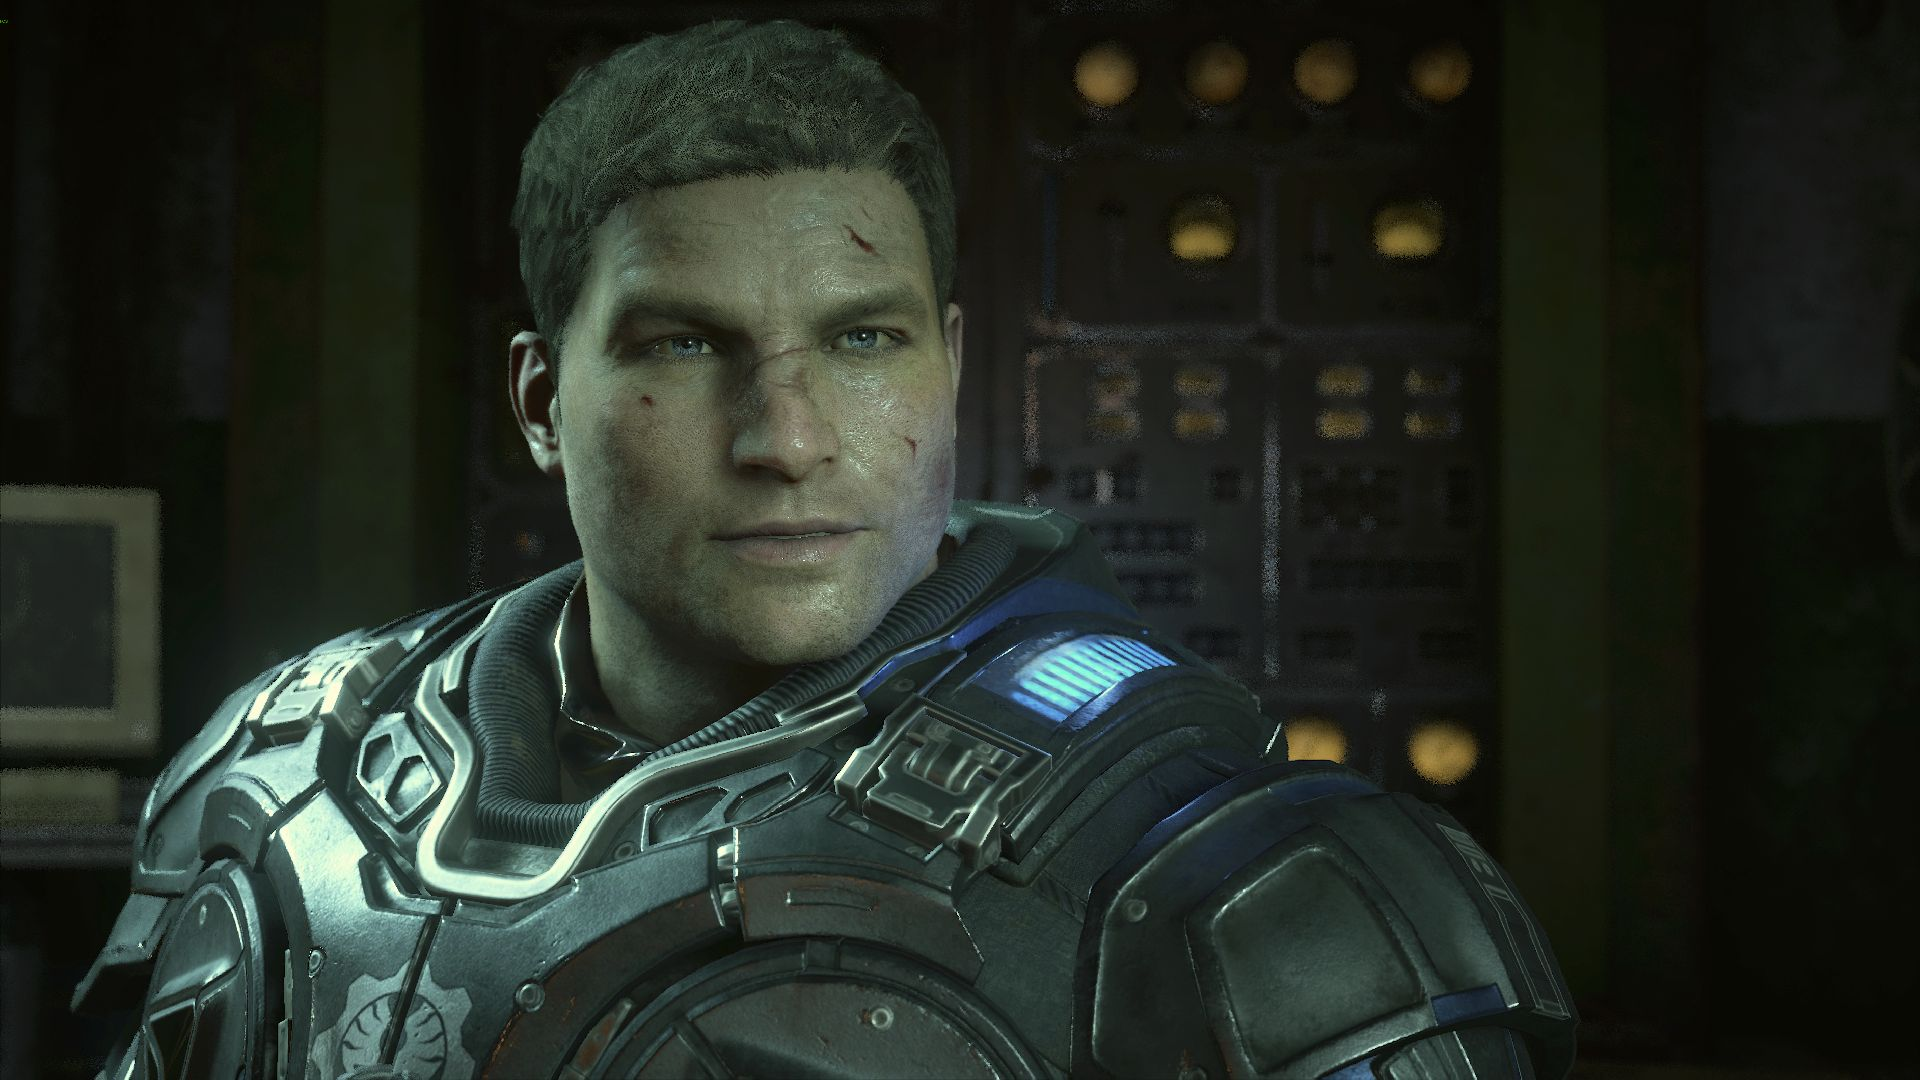 gears of war 4 matchmaking issues is mollie dating a j